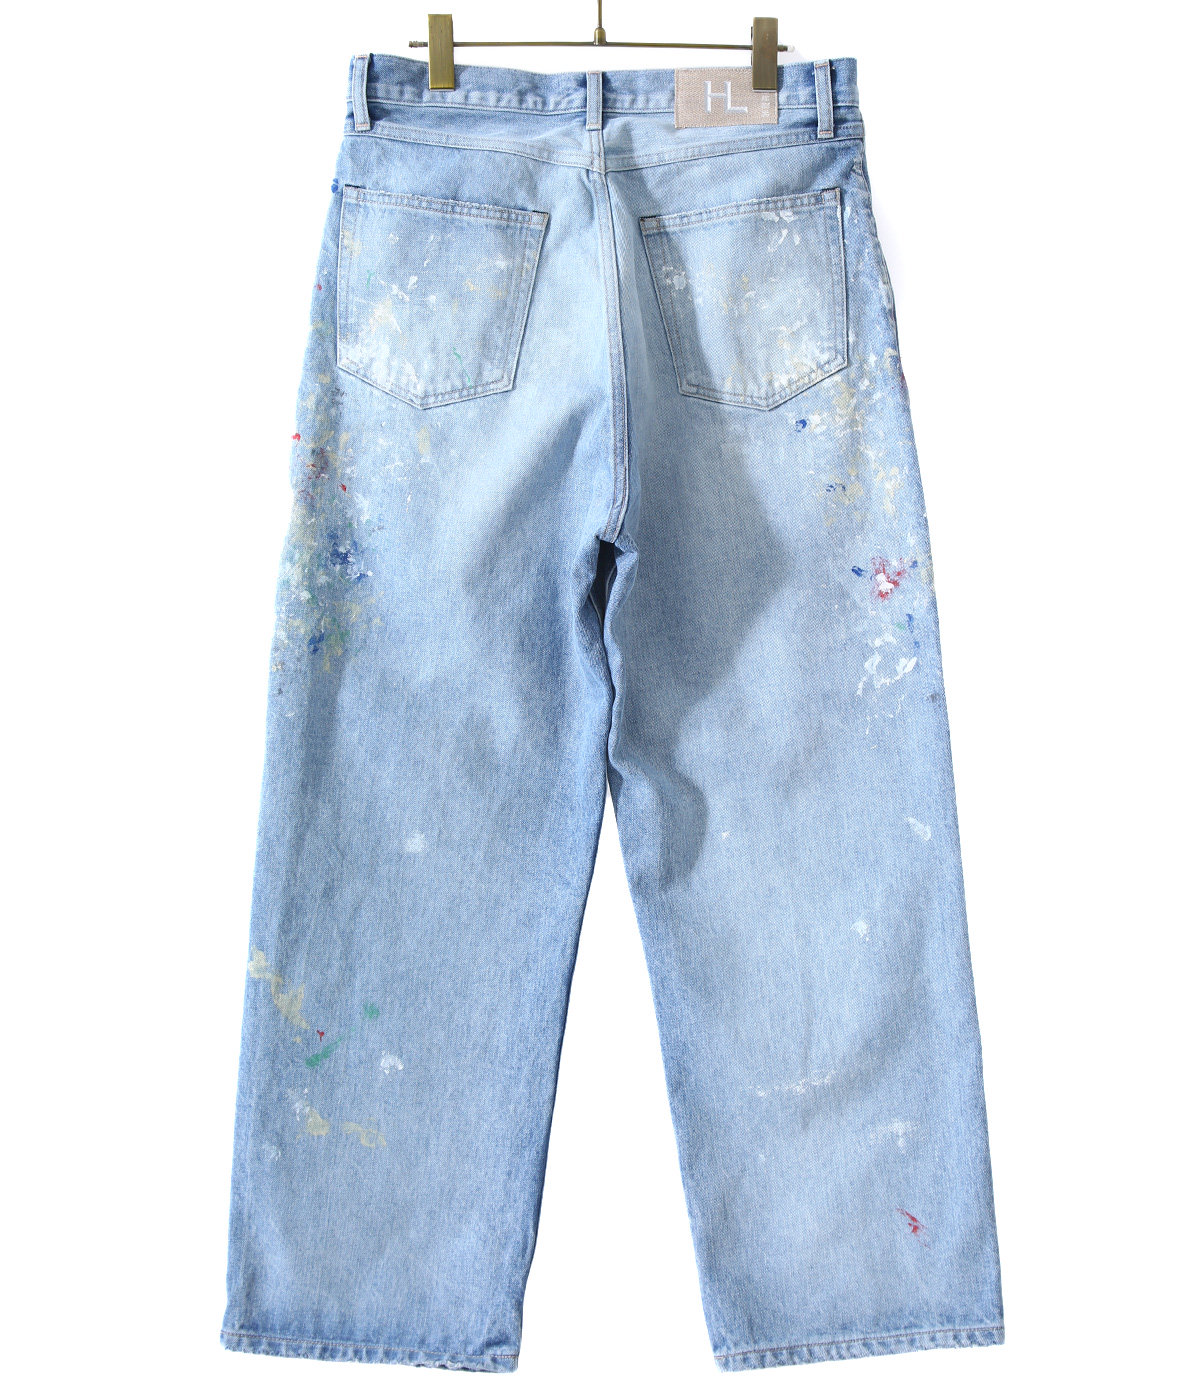 15oz Denim Tack Splash 4PK